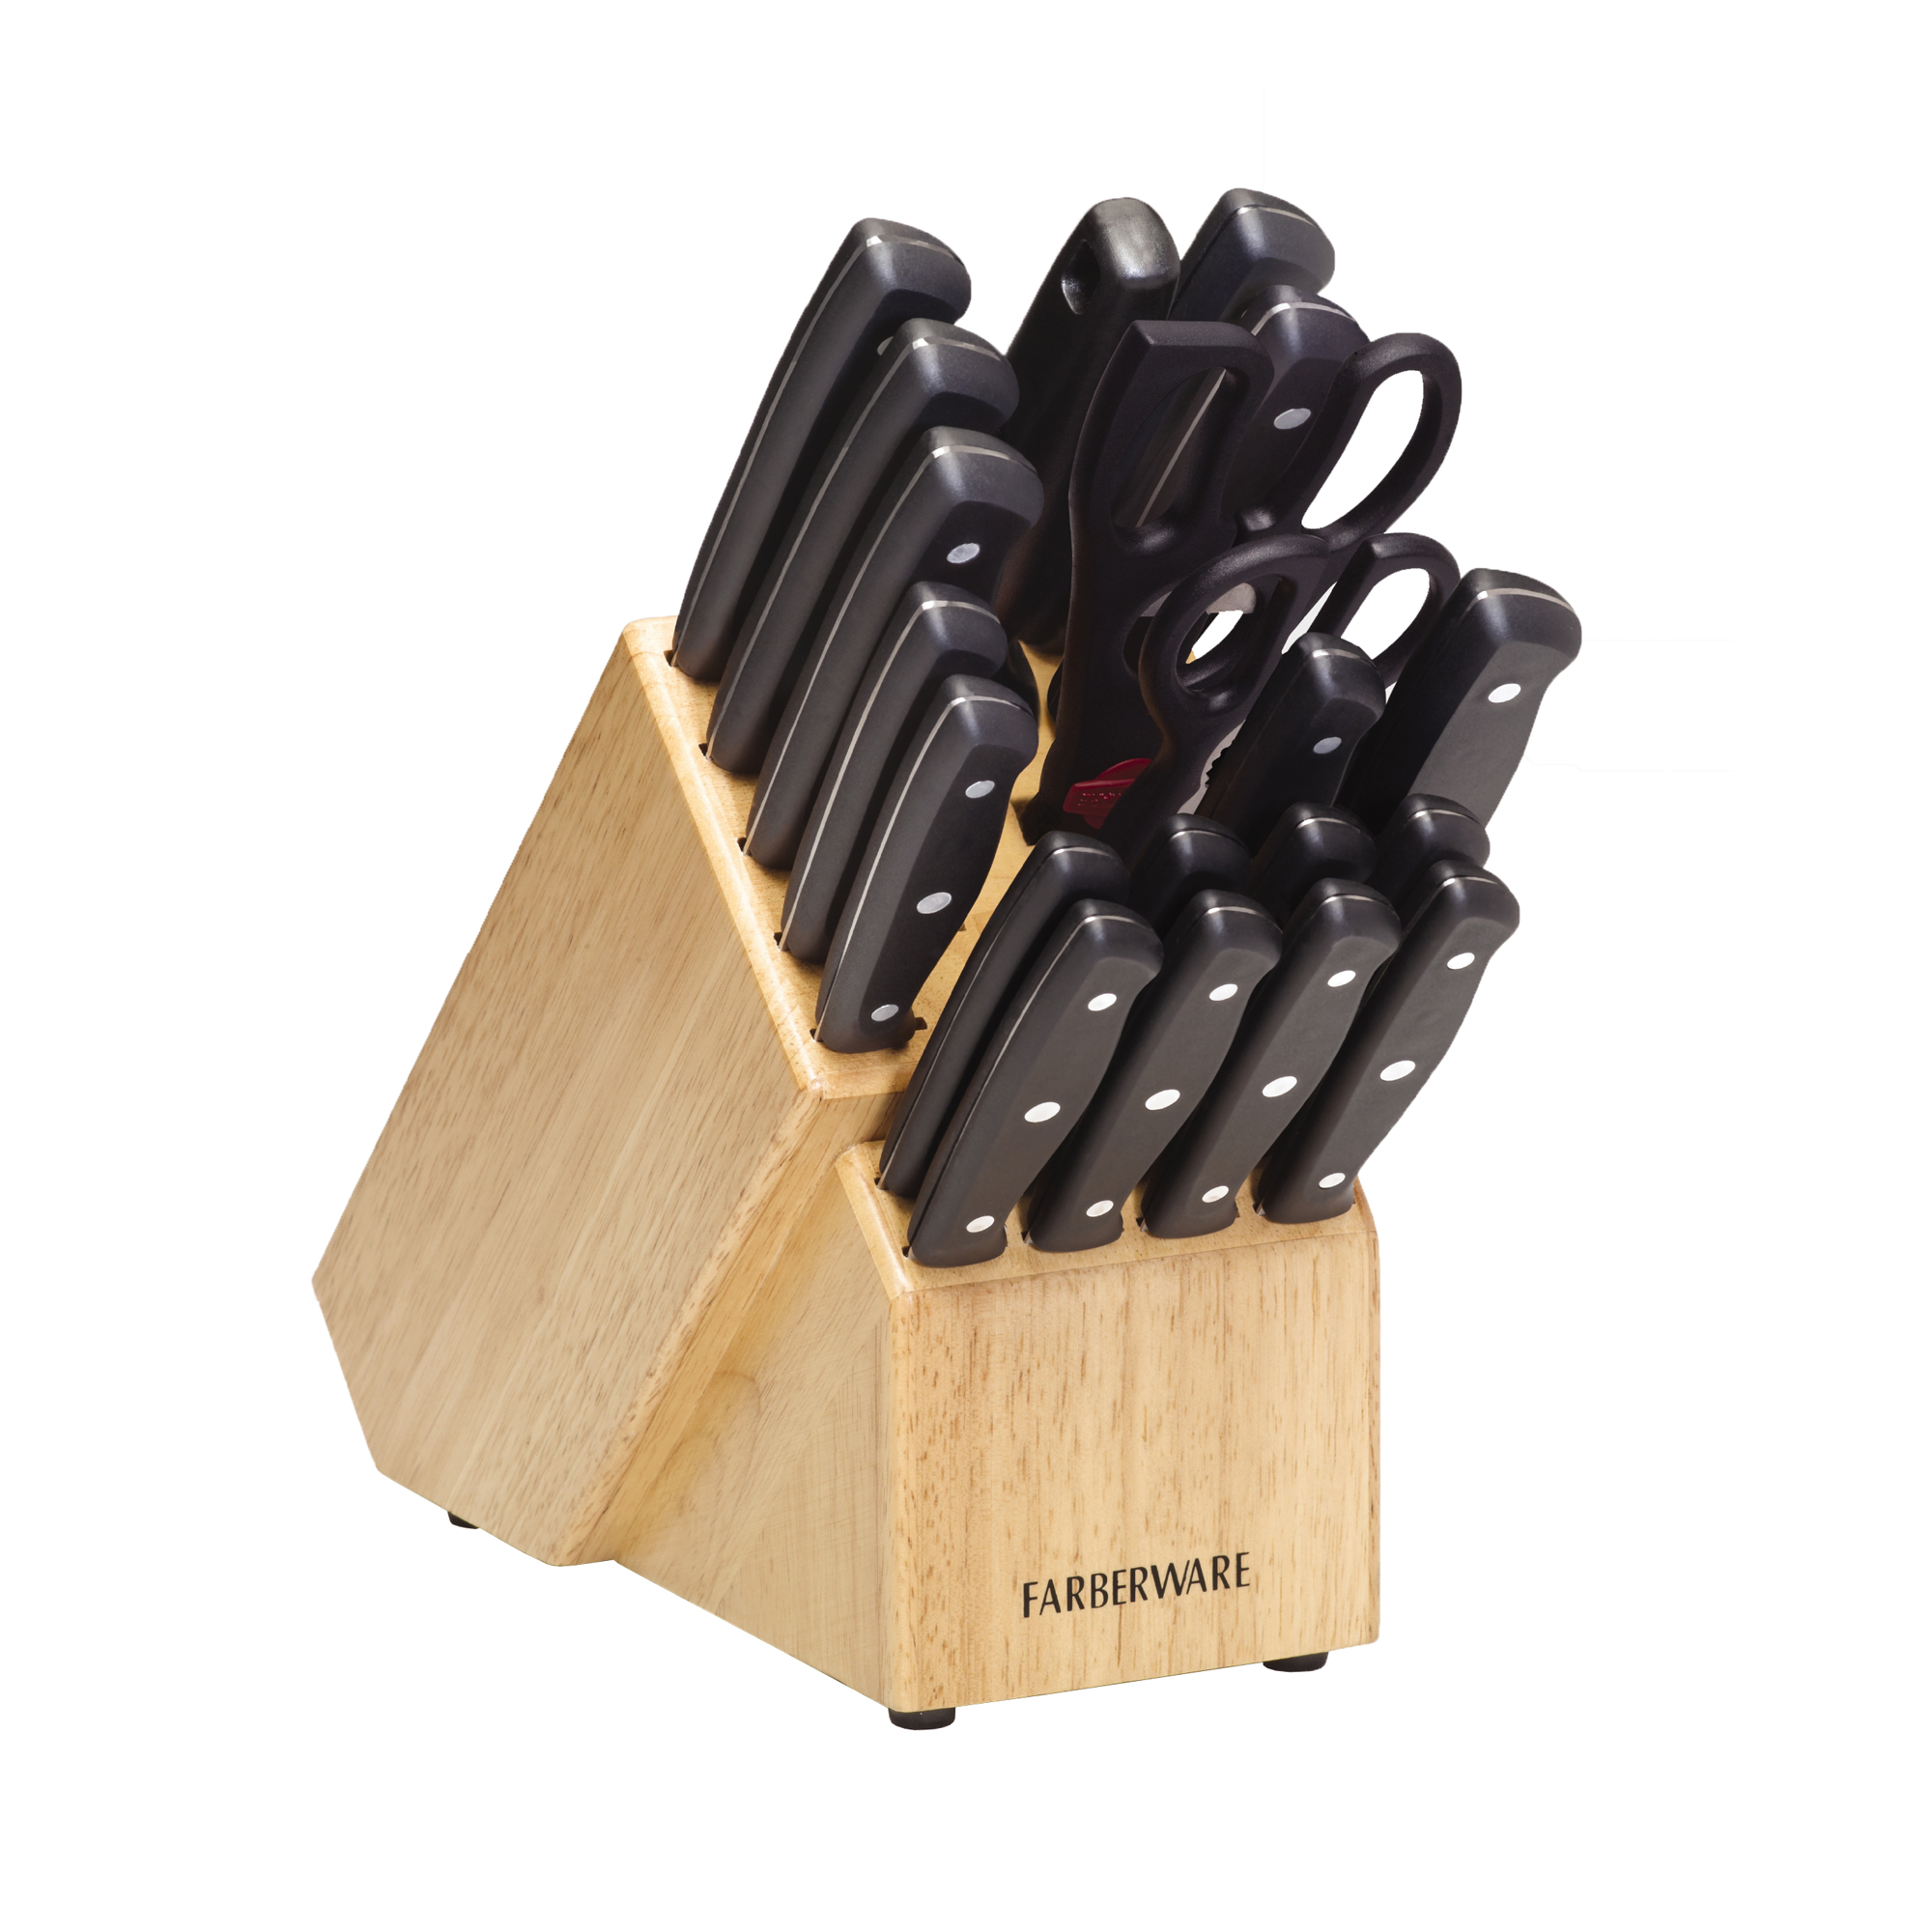 Farberware Traditions 21 Piece Cutlery-Knife Block Set